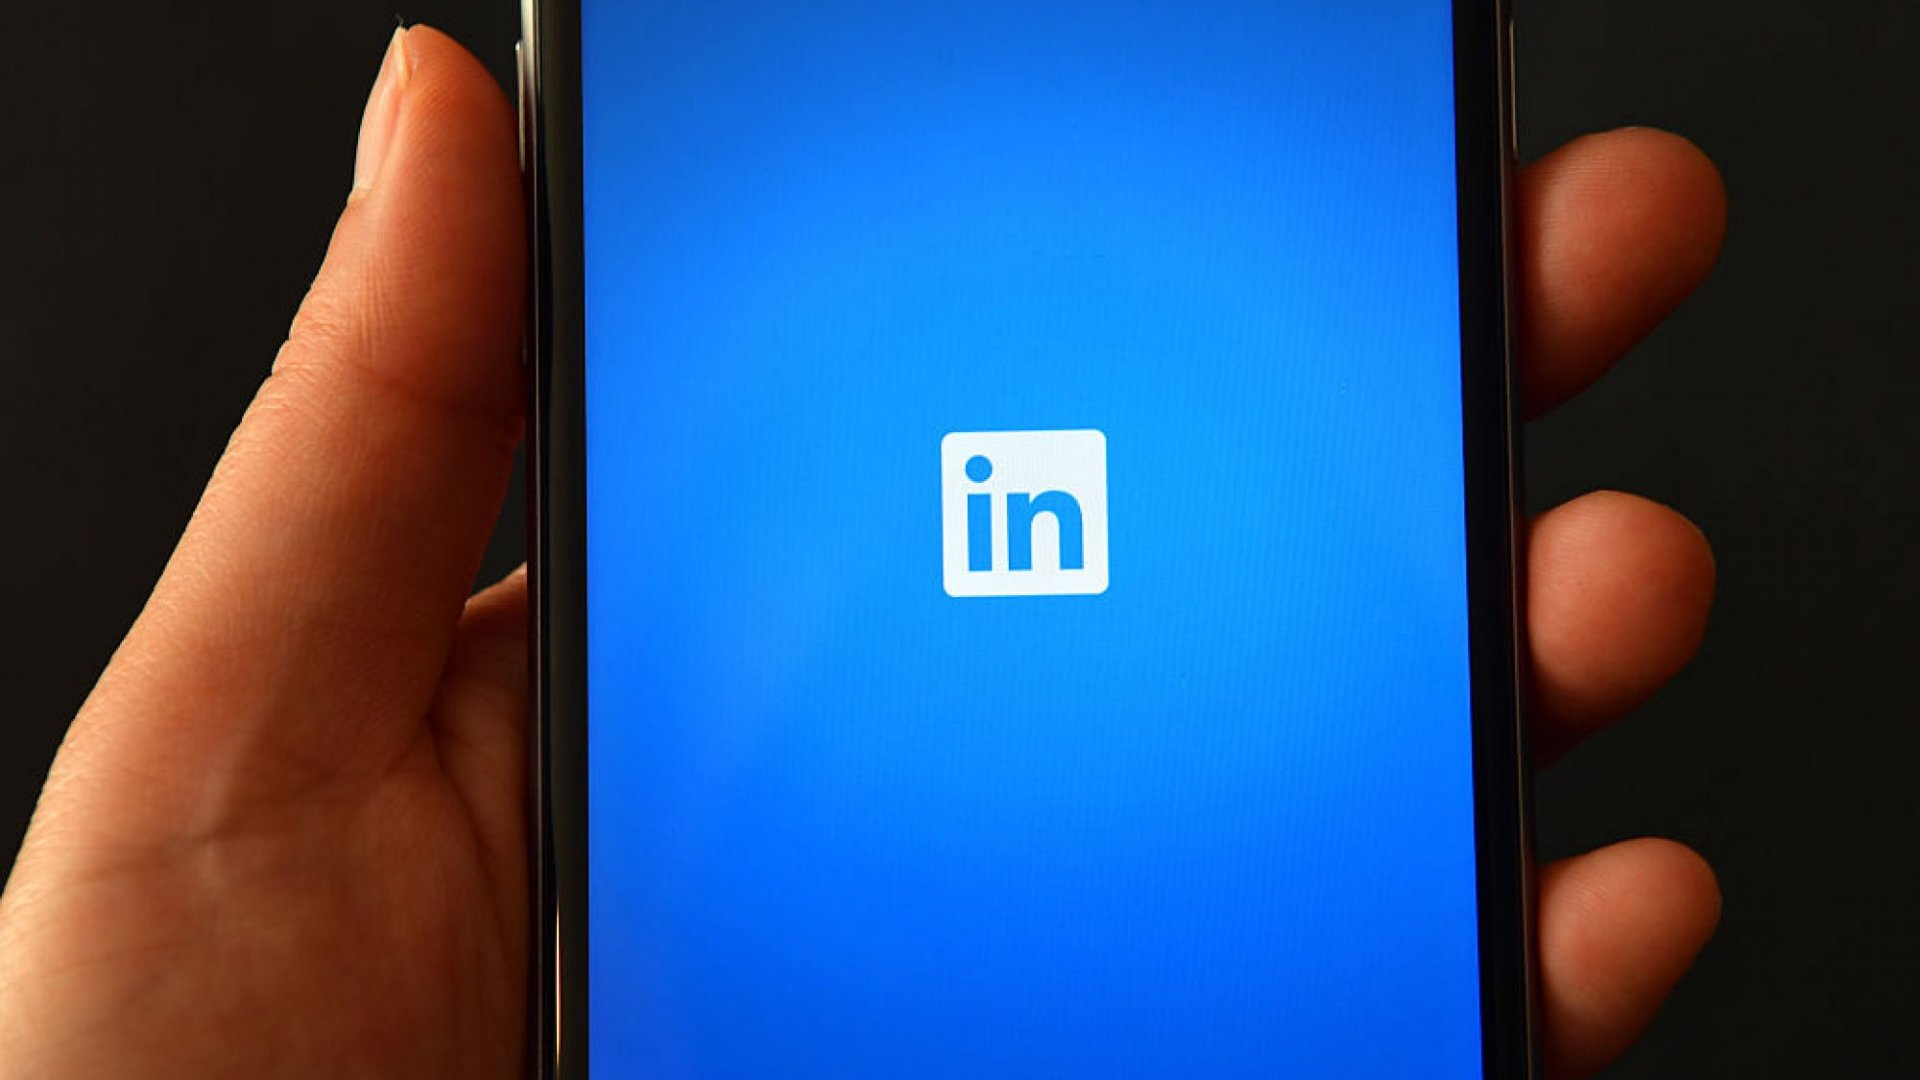 This Common LinkedIn Mistake Could Be Fatal to Your Brand. Do This Instead